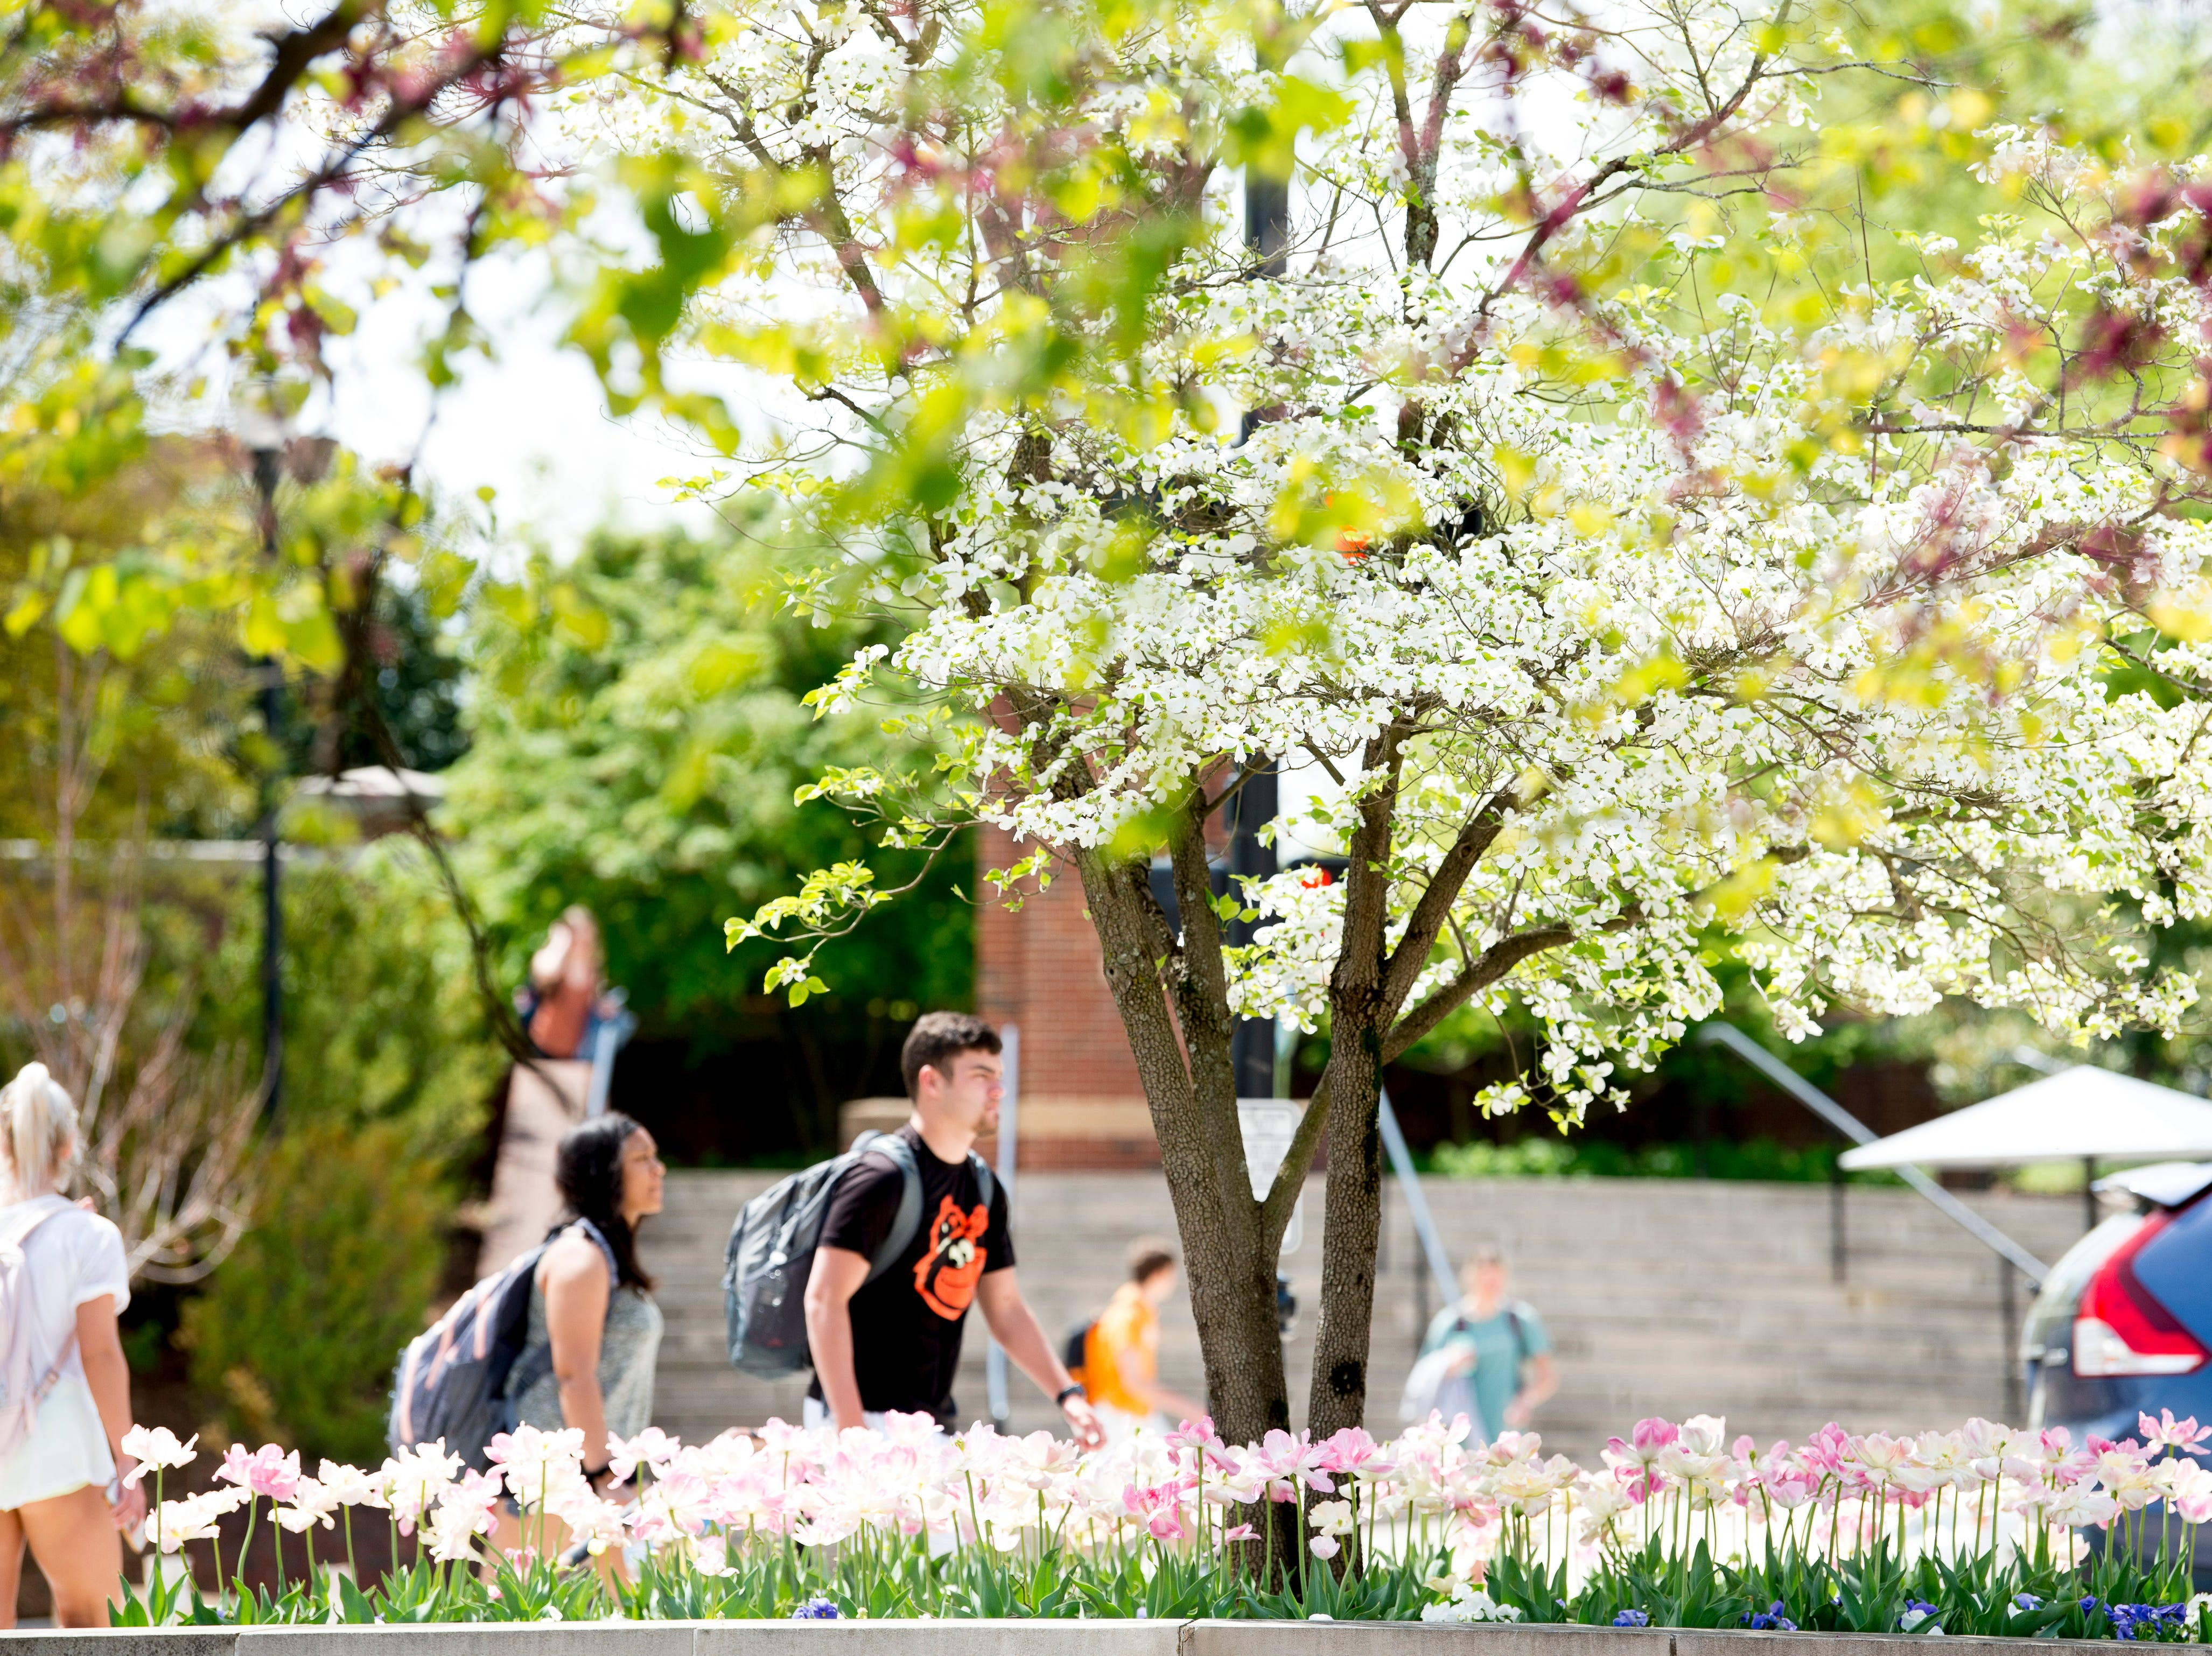 Trees and flowers bloom on the UT campus in Knoxville, Tennessee on Thursday, April 11, 2019.